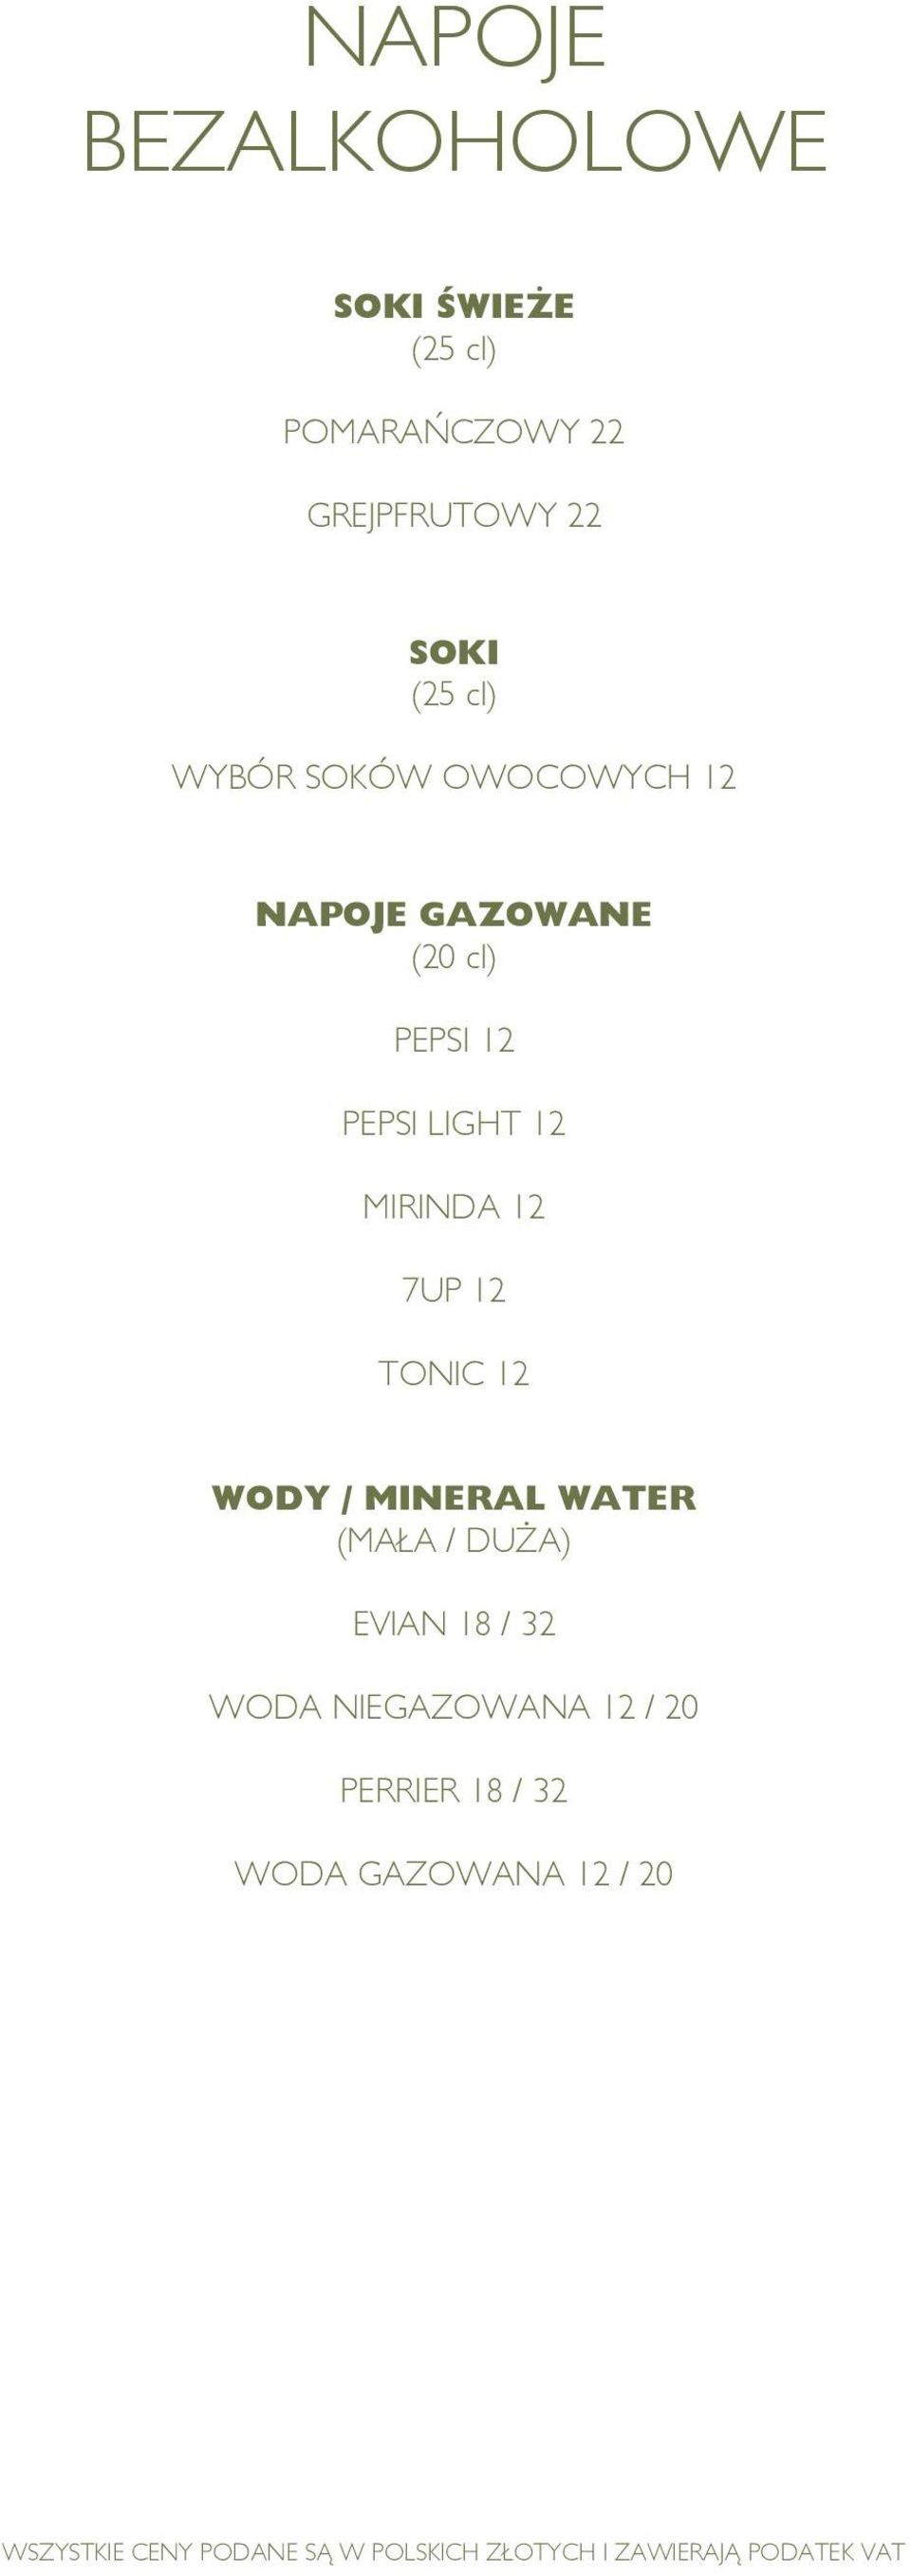 PEPSI LIGHT 12 MIRINDA 12 7UP 12 TONIC 12 WODY / MINERAL WATER (MAŁA /